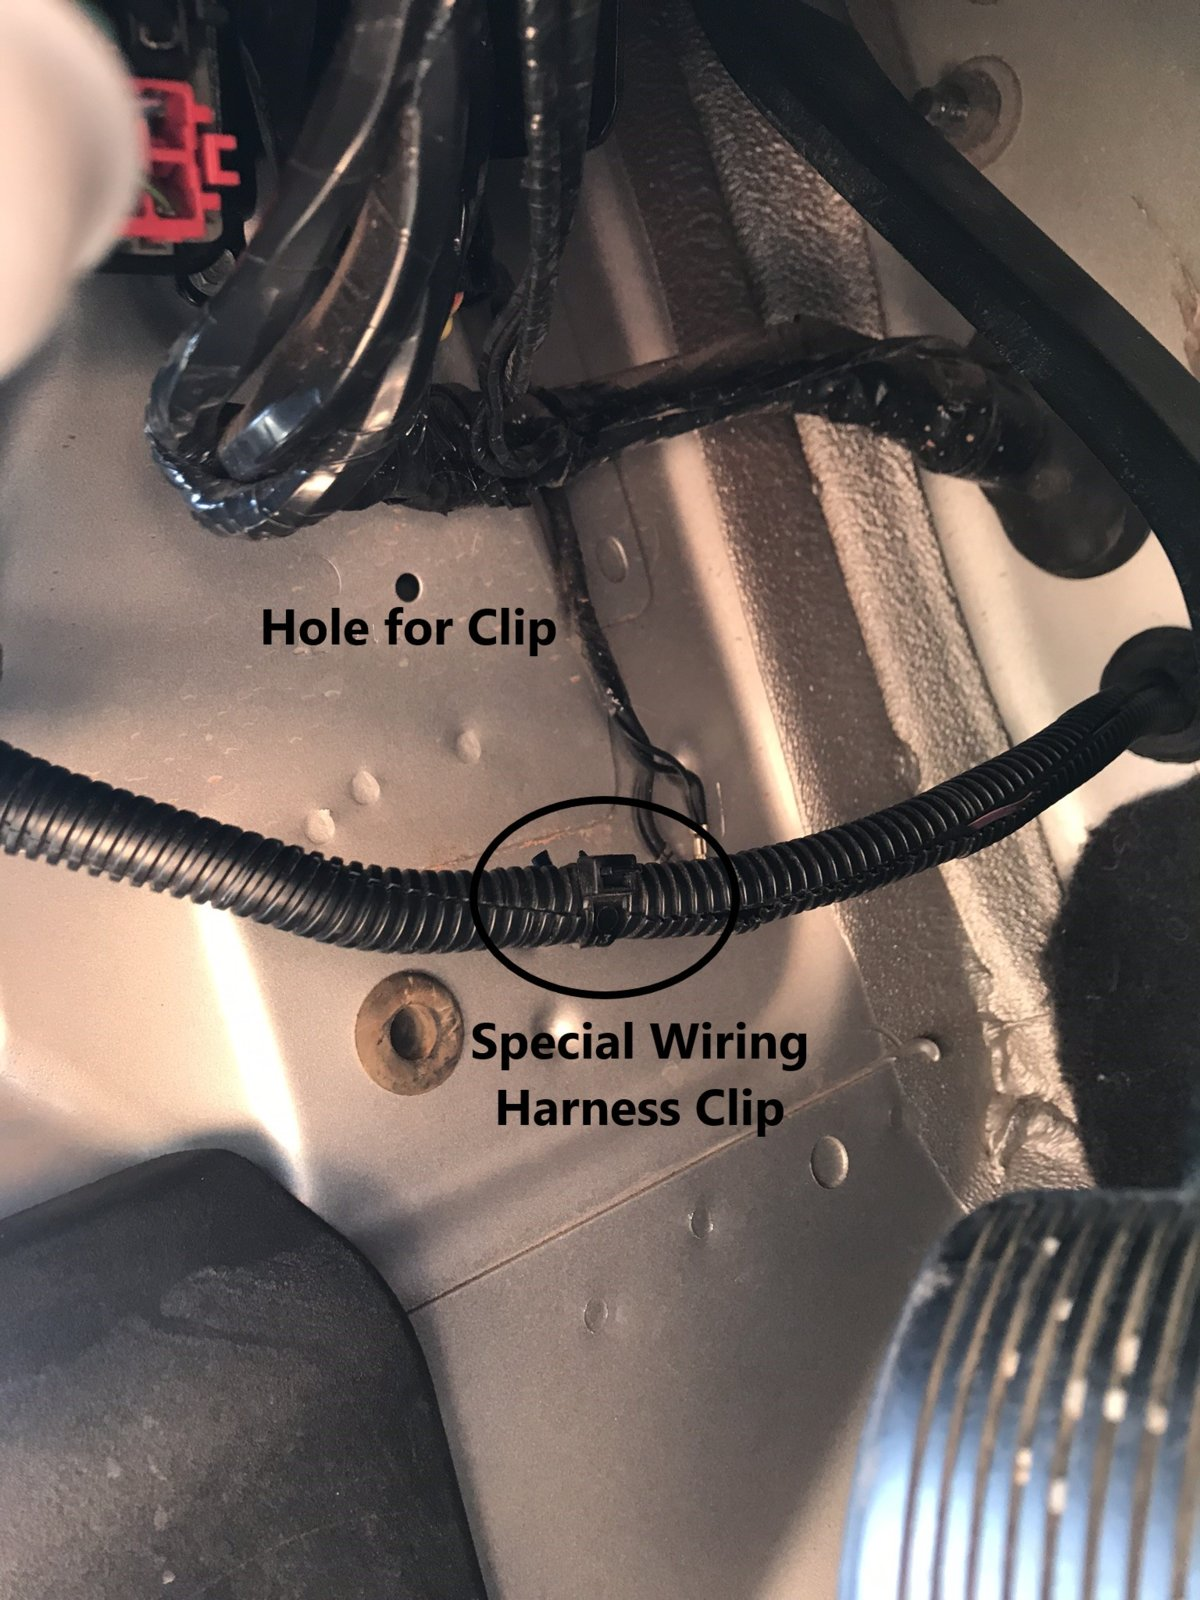 hight resolution of go ahead and remove the old clip if applicable and tape use electrical tape the second wiring harness clip you saved to the washer loom in it s place